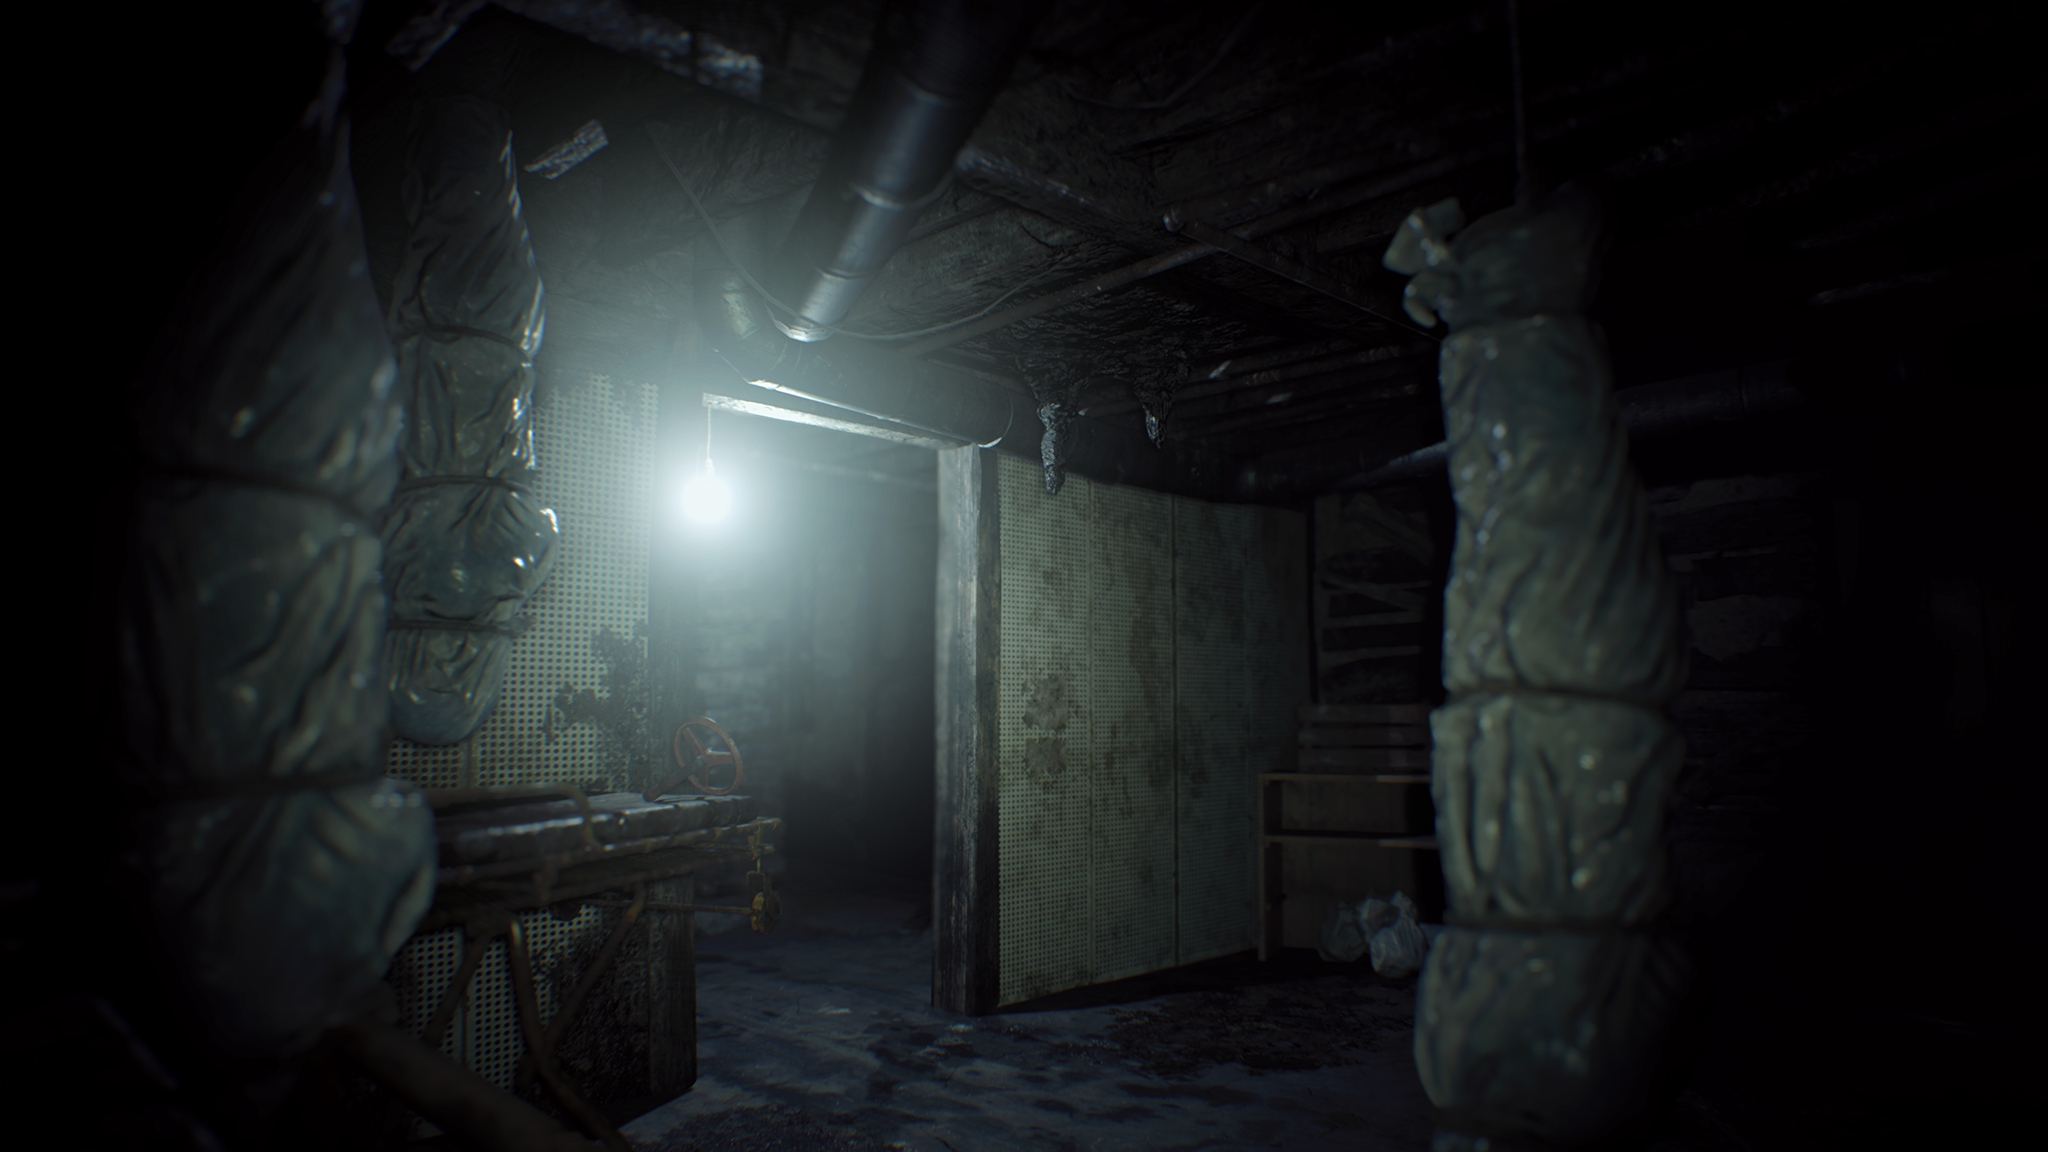 resident-evil-7-biohazard-screenshot-018